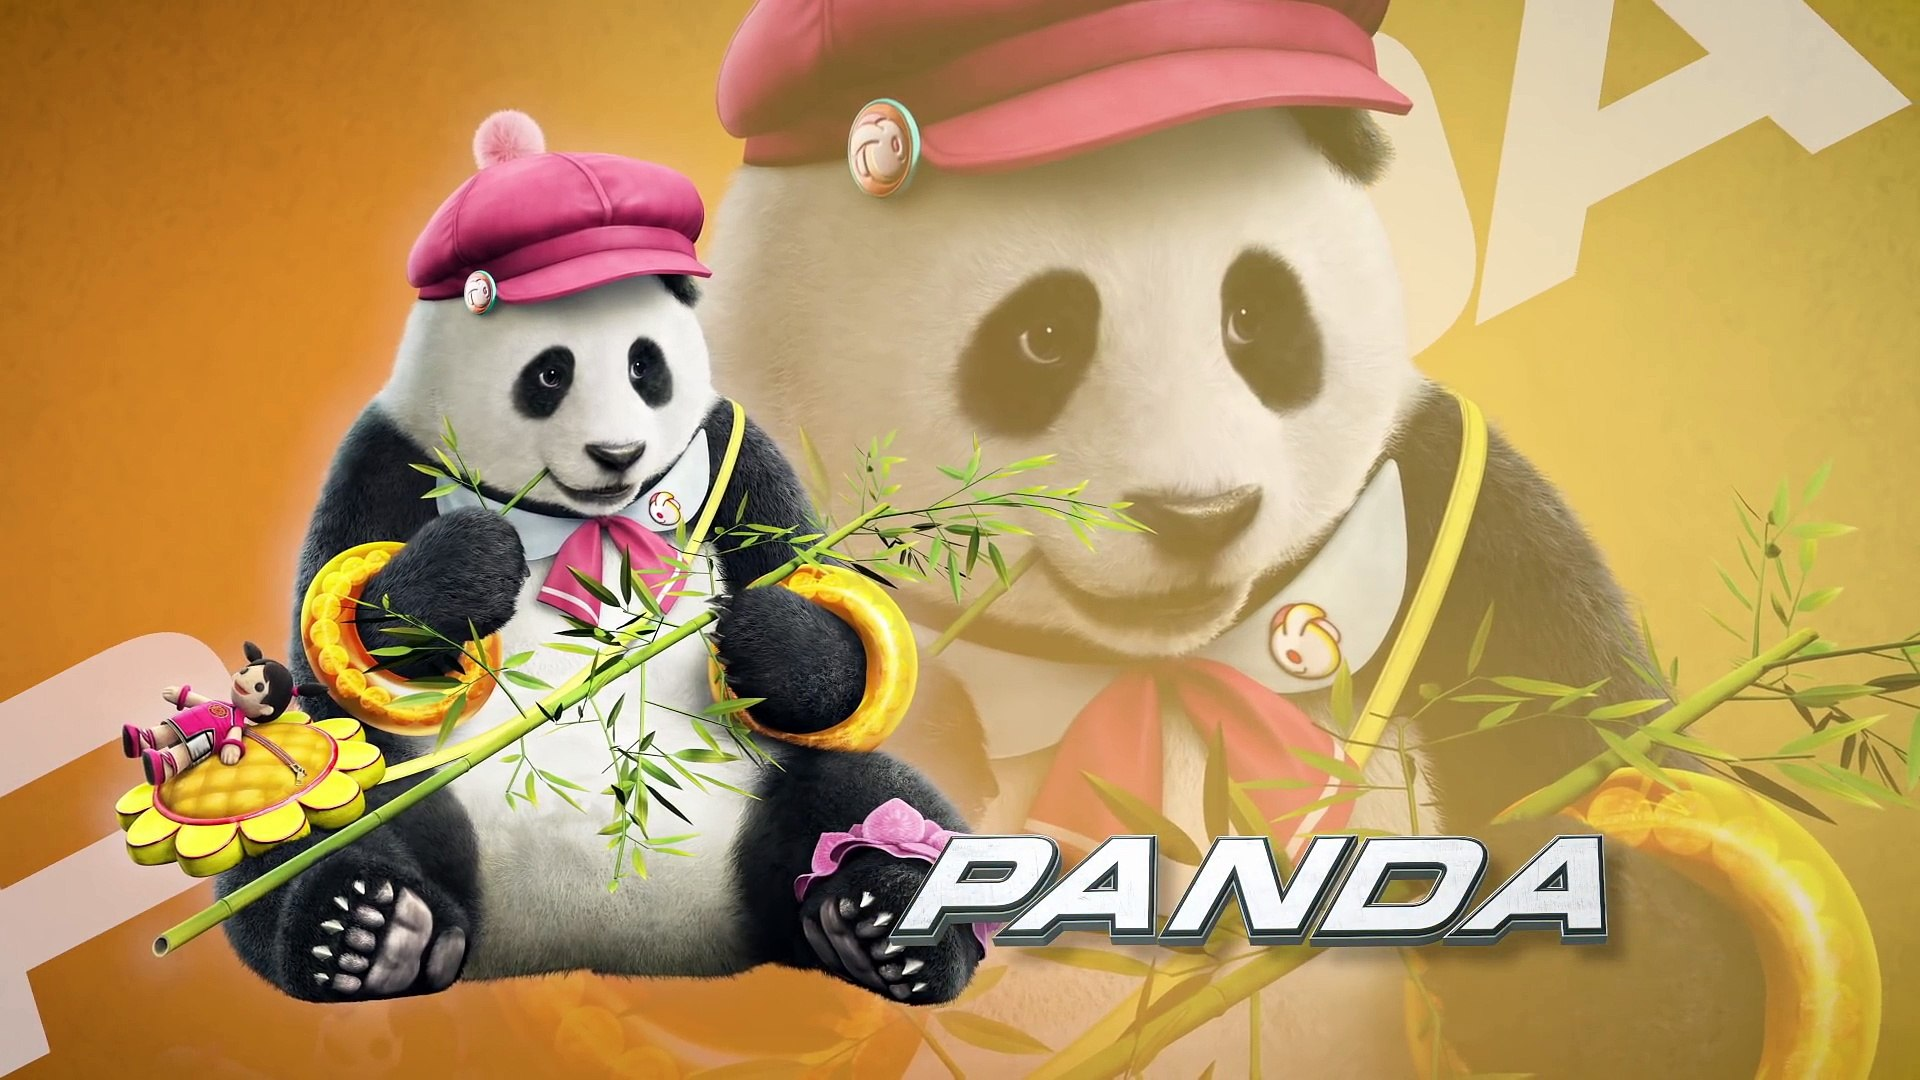 Tekken 7 Kuma Panda Reveal Trailer Xb1 Ps4 Steam Video Dailymotion